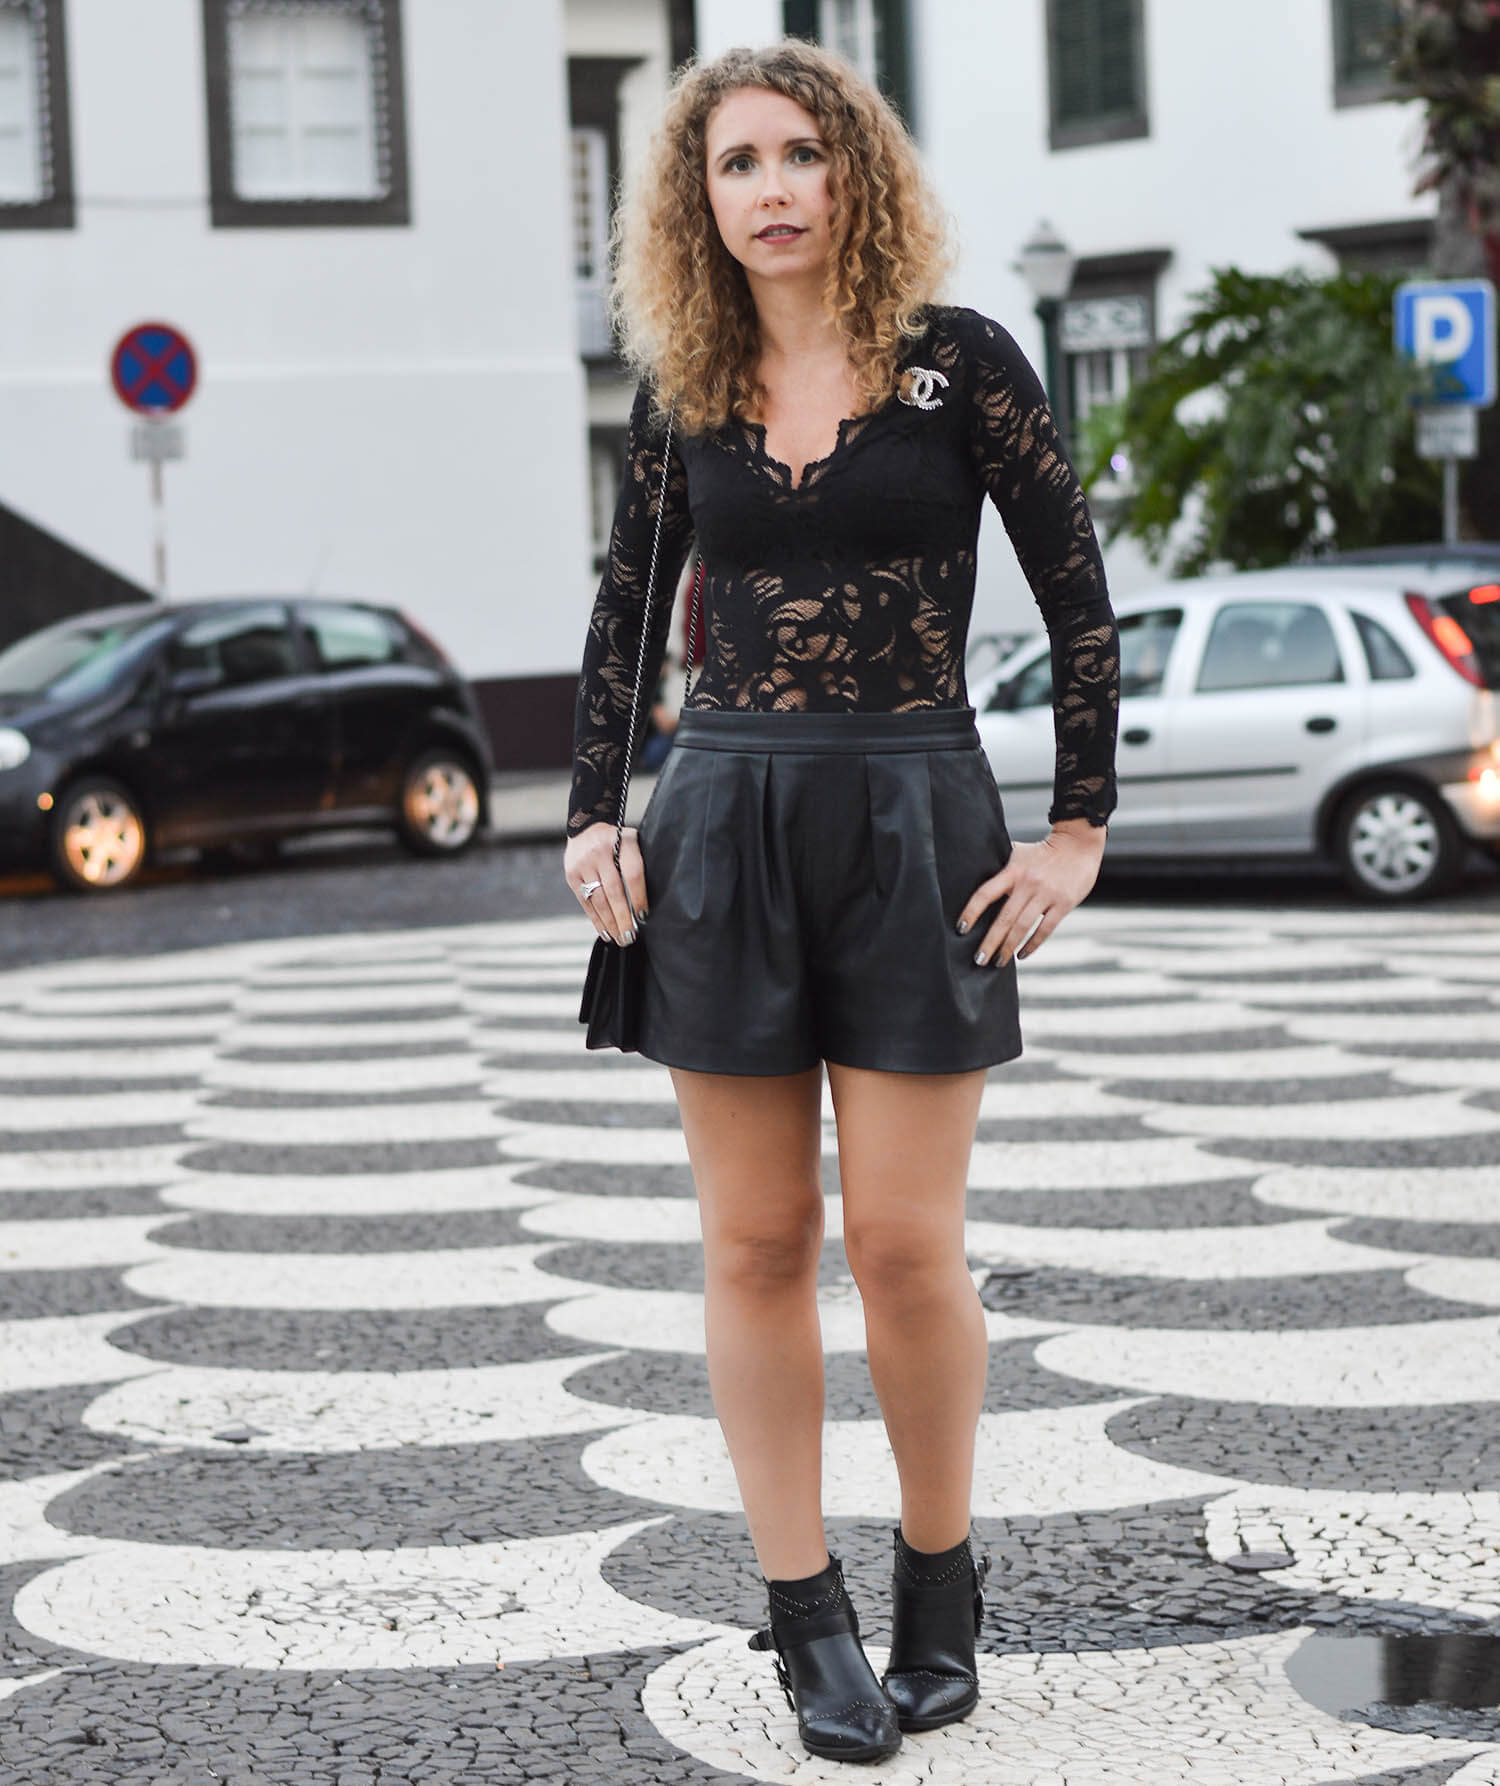 Kationette-fashionblogger-nrw-Outfit-Chanel-zara-Allblack--Lace-and-Leather-for-dinner-in-Funchal-Madeira-travelblogger